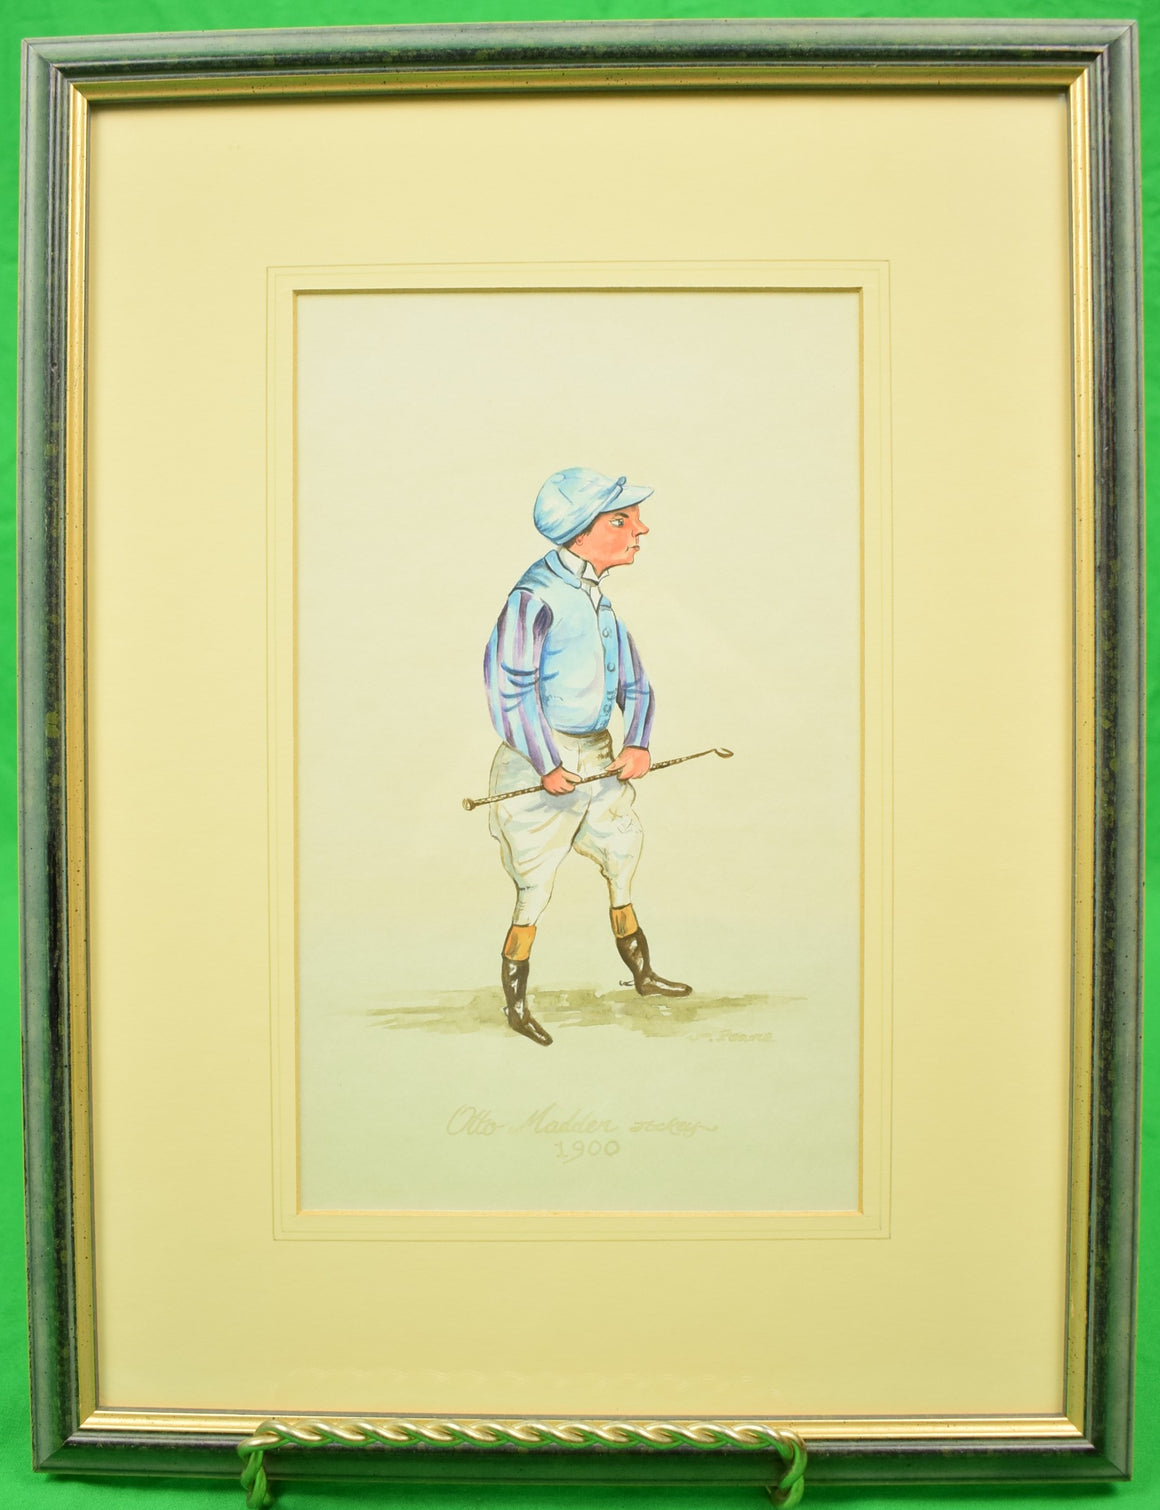 Otto Madden Jockey 1900 Watercolour by Wm. Pearce